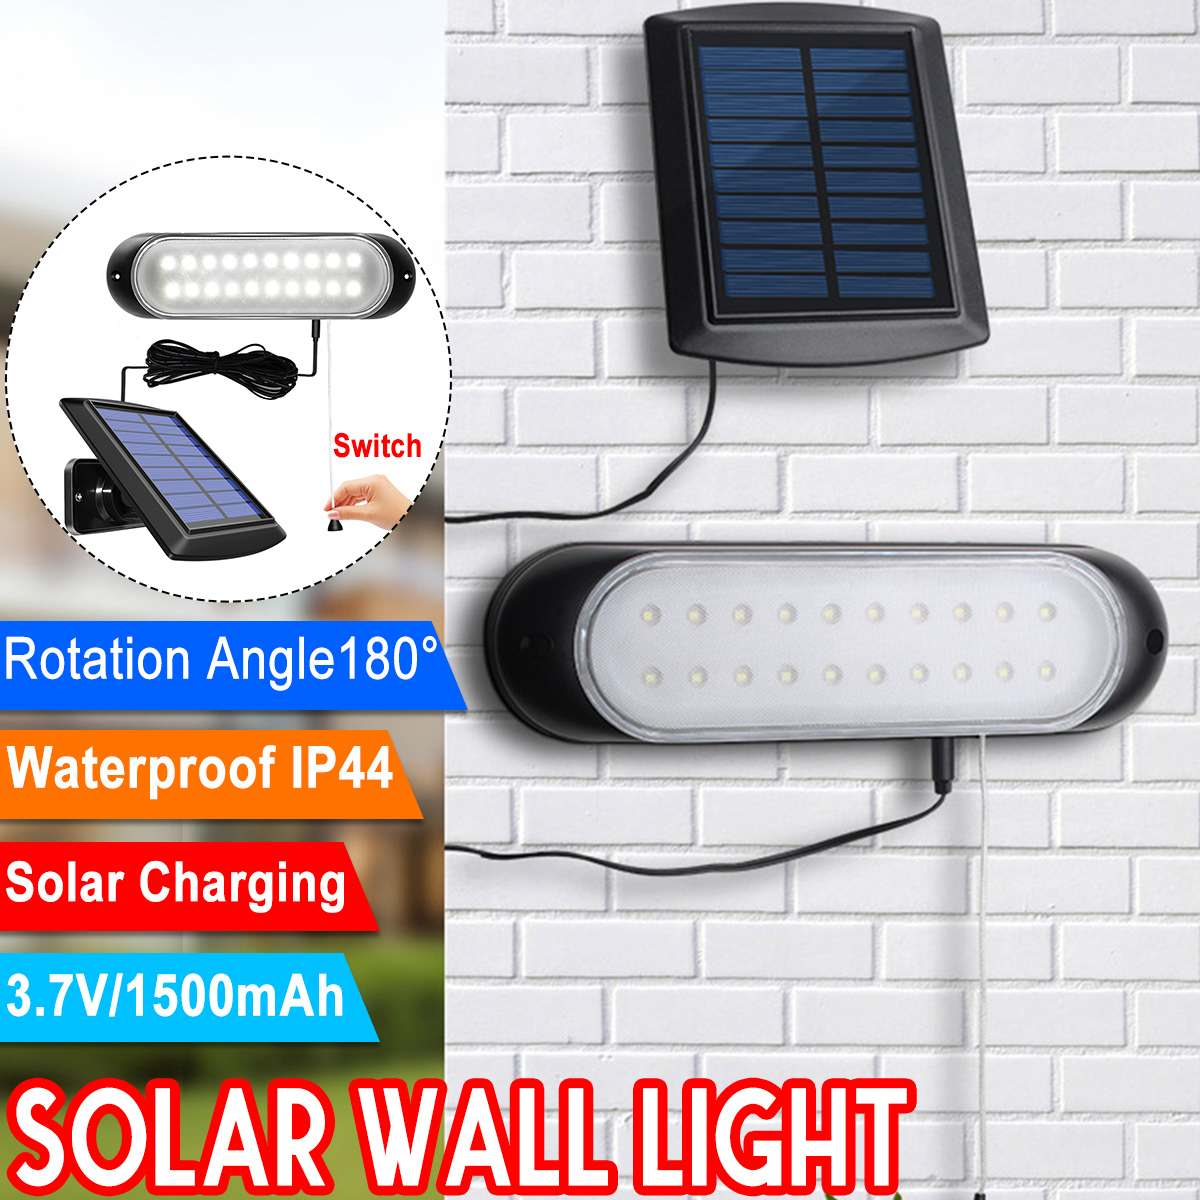 20 LED Solar Lamp Separable Solar Panel and Light With Line Waterproof Pull- Switch Lighting Available Outdoor or Indoor